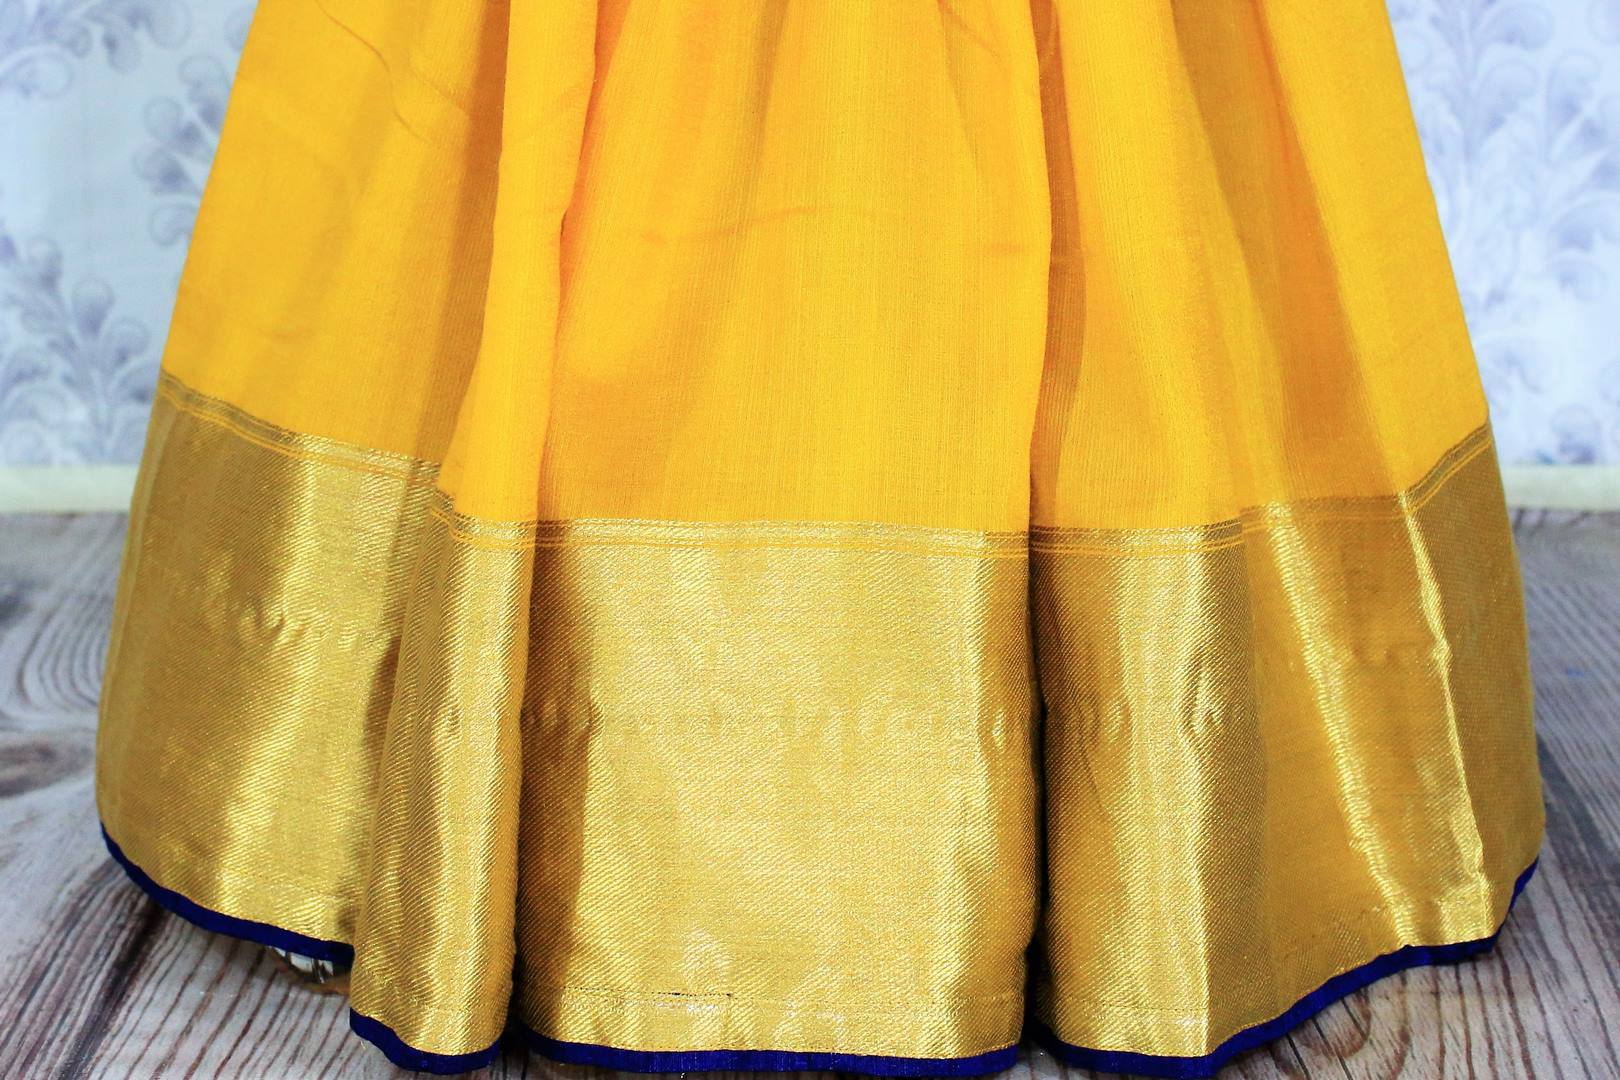 Buy online yellow muga Banarasi saree in USA with black embroidered saree blouse. Bring a touch of tradition to your Indian look with an exquisite range Indian designer silk saris, Banarasi sarees available at Pure Elegance Indian fashion store in USA or shop online.-pleats